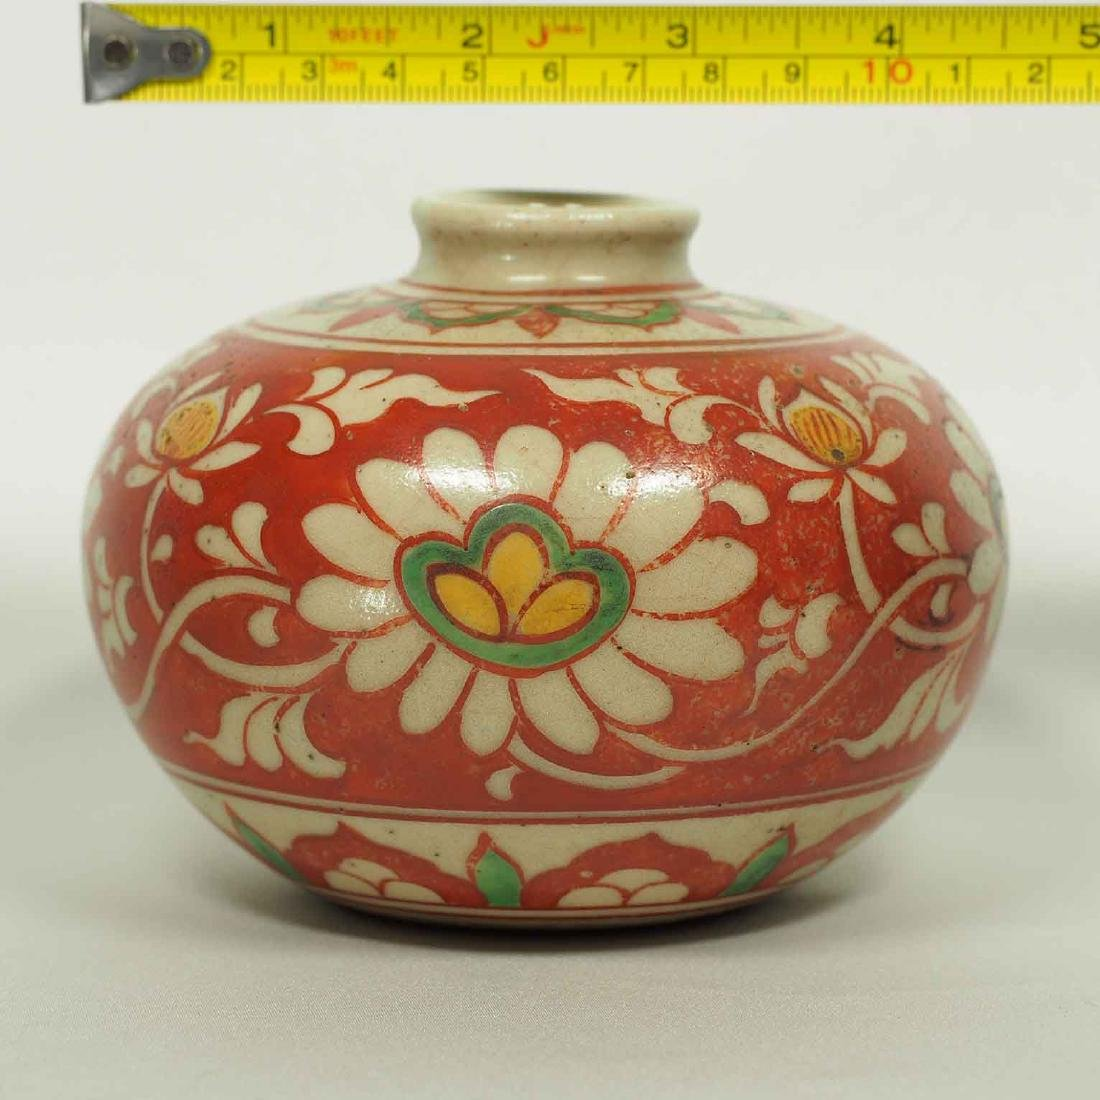 Large Wucai Jarlet with Floral Scroll Design, late Ming - 8